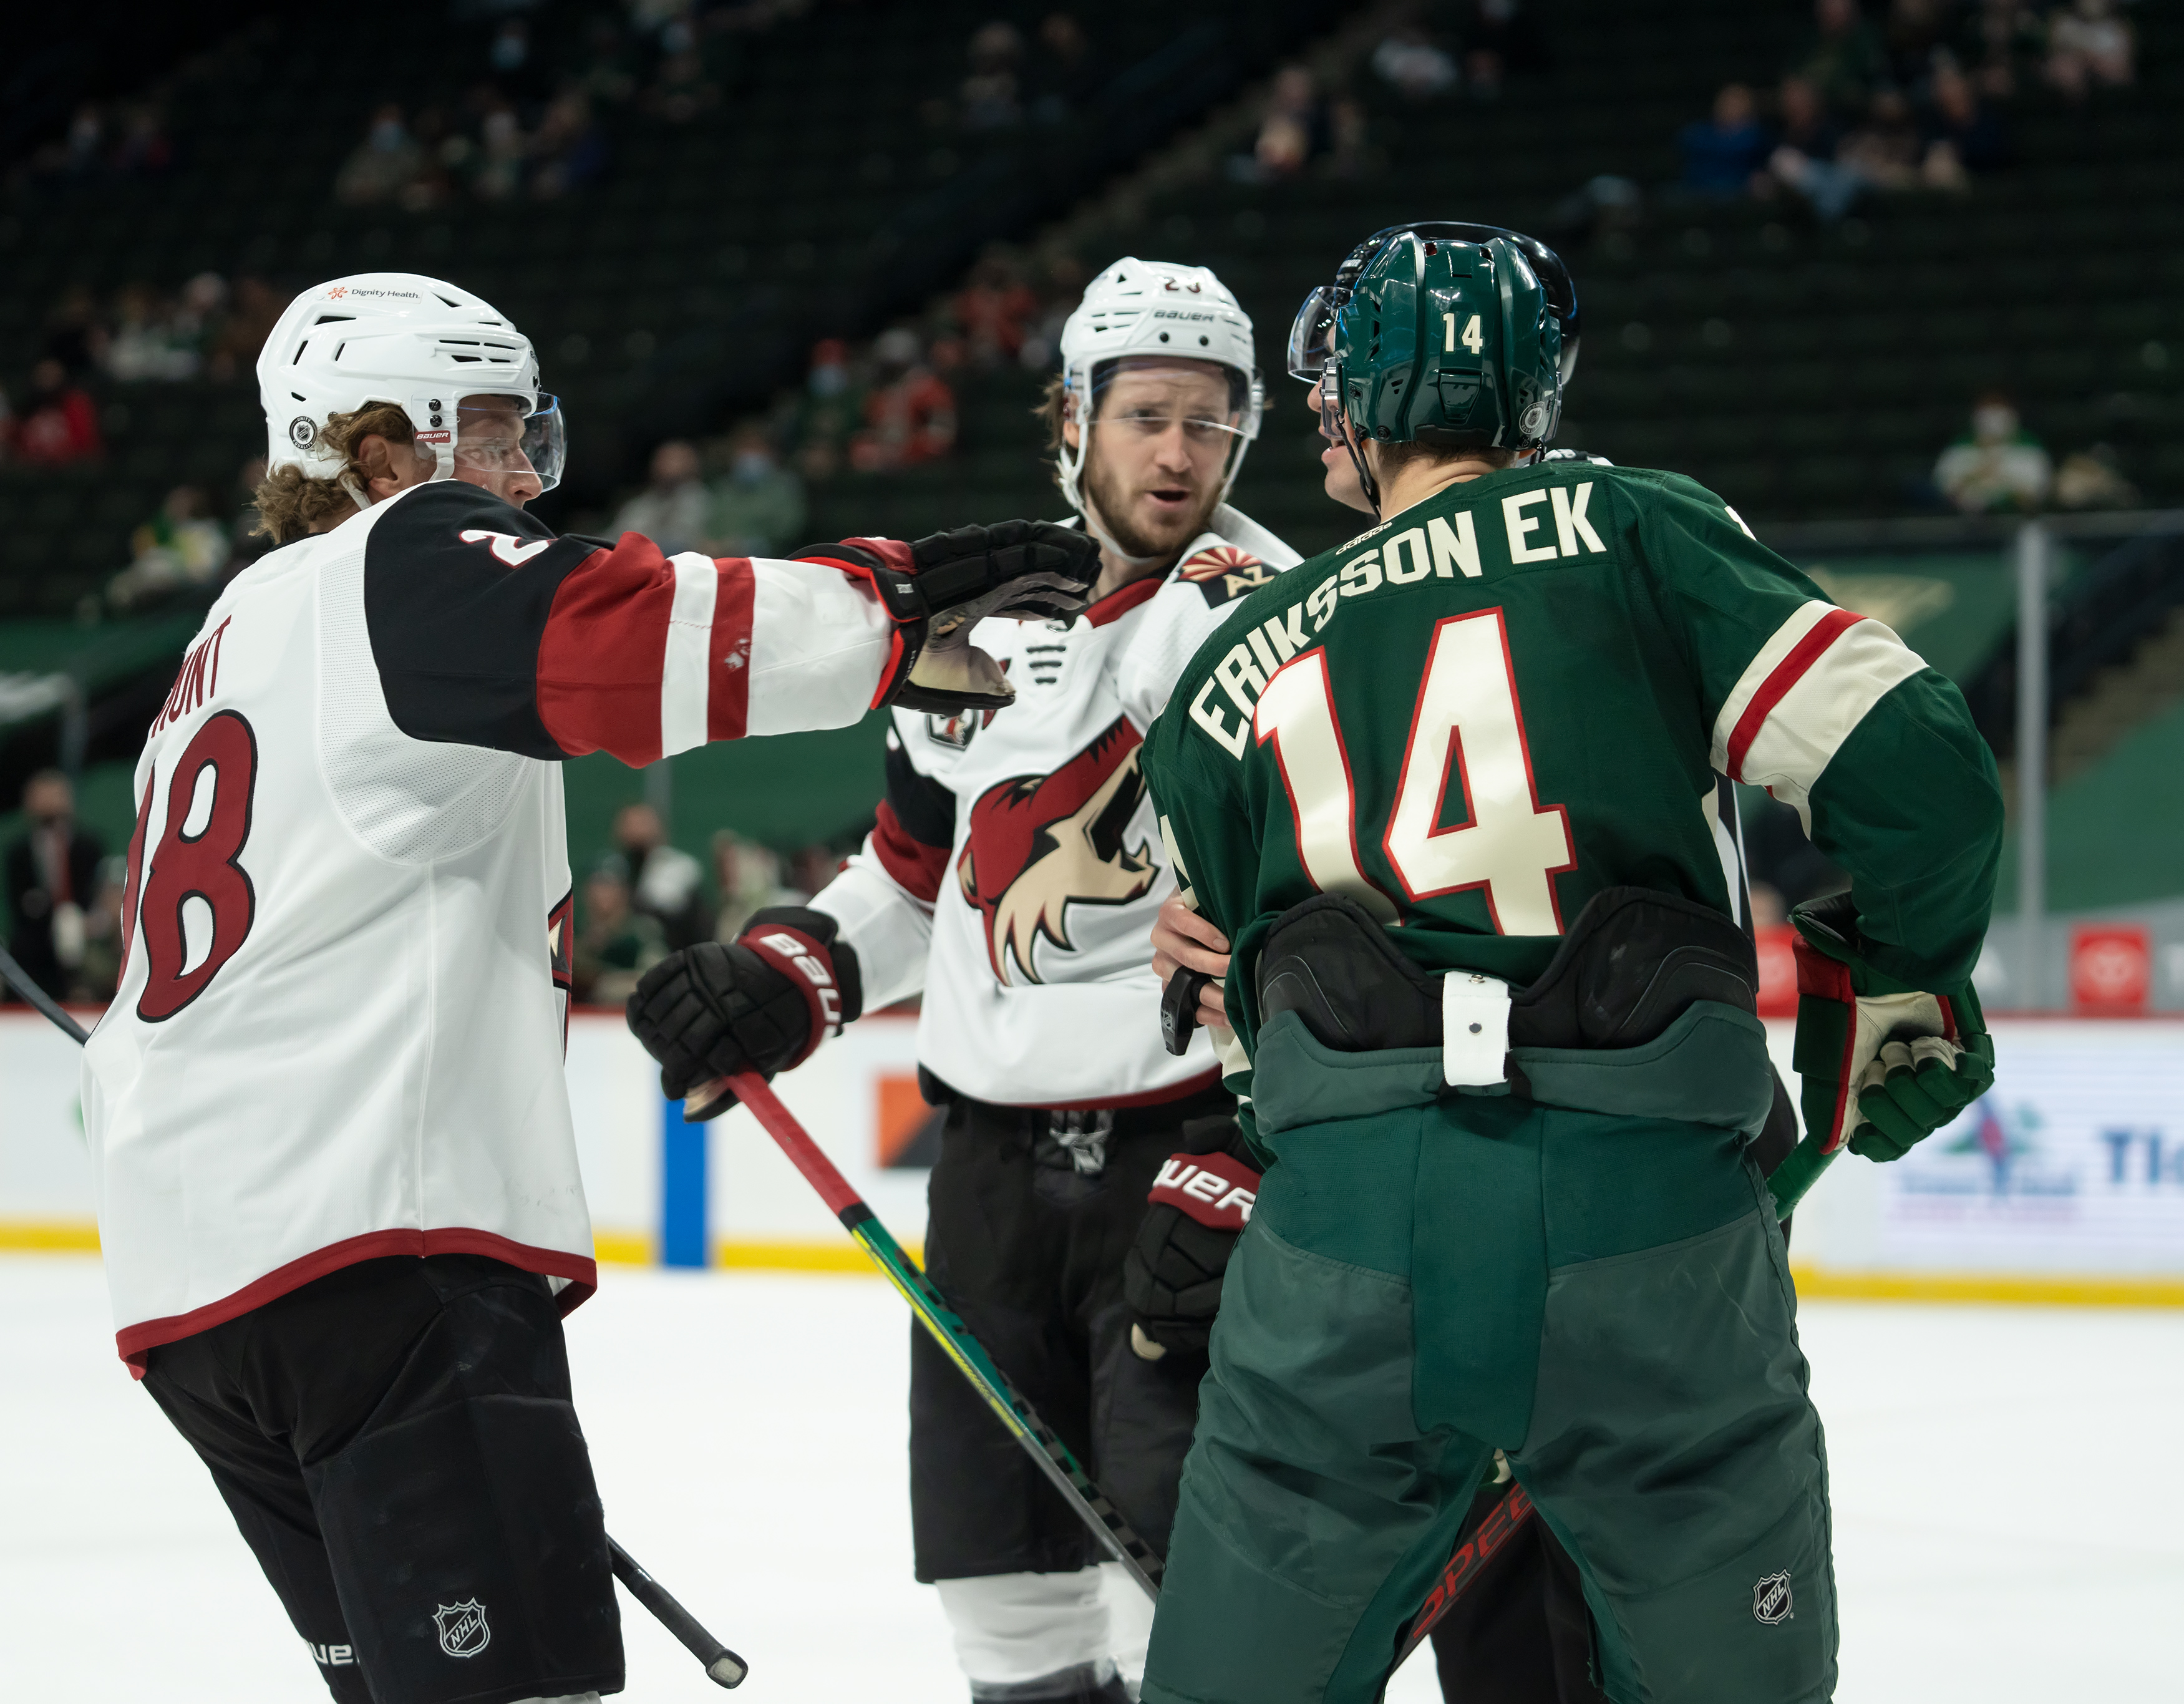 Game Preview: Minnesota Wild vs. Arizona Coyotes 4/21/21 @ 8:00PM CST at Gila River Arena